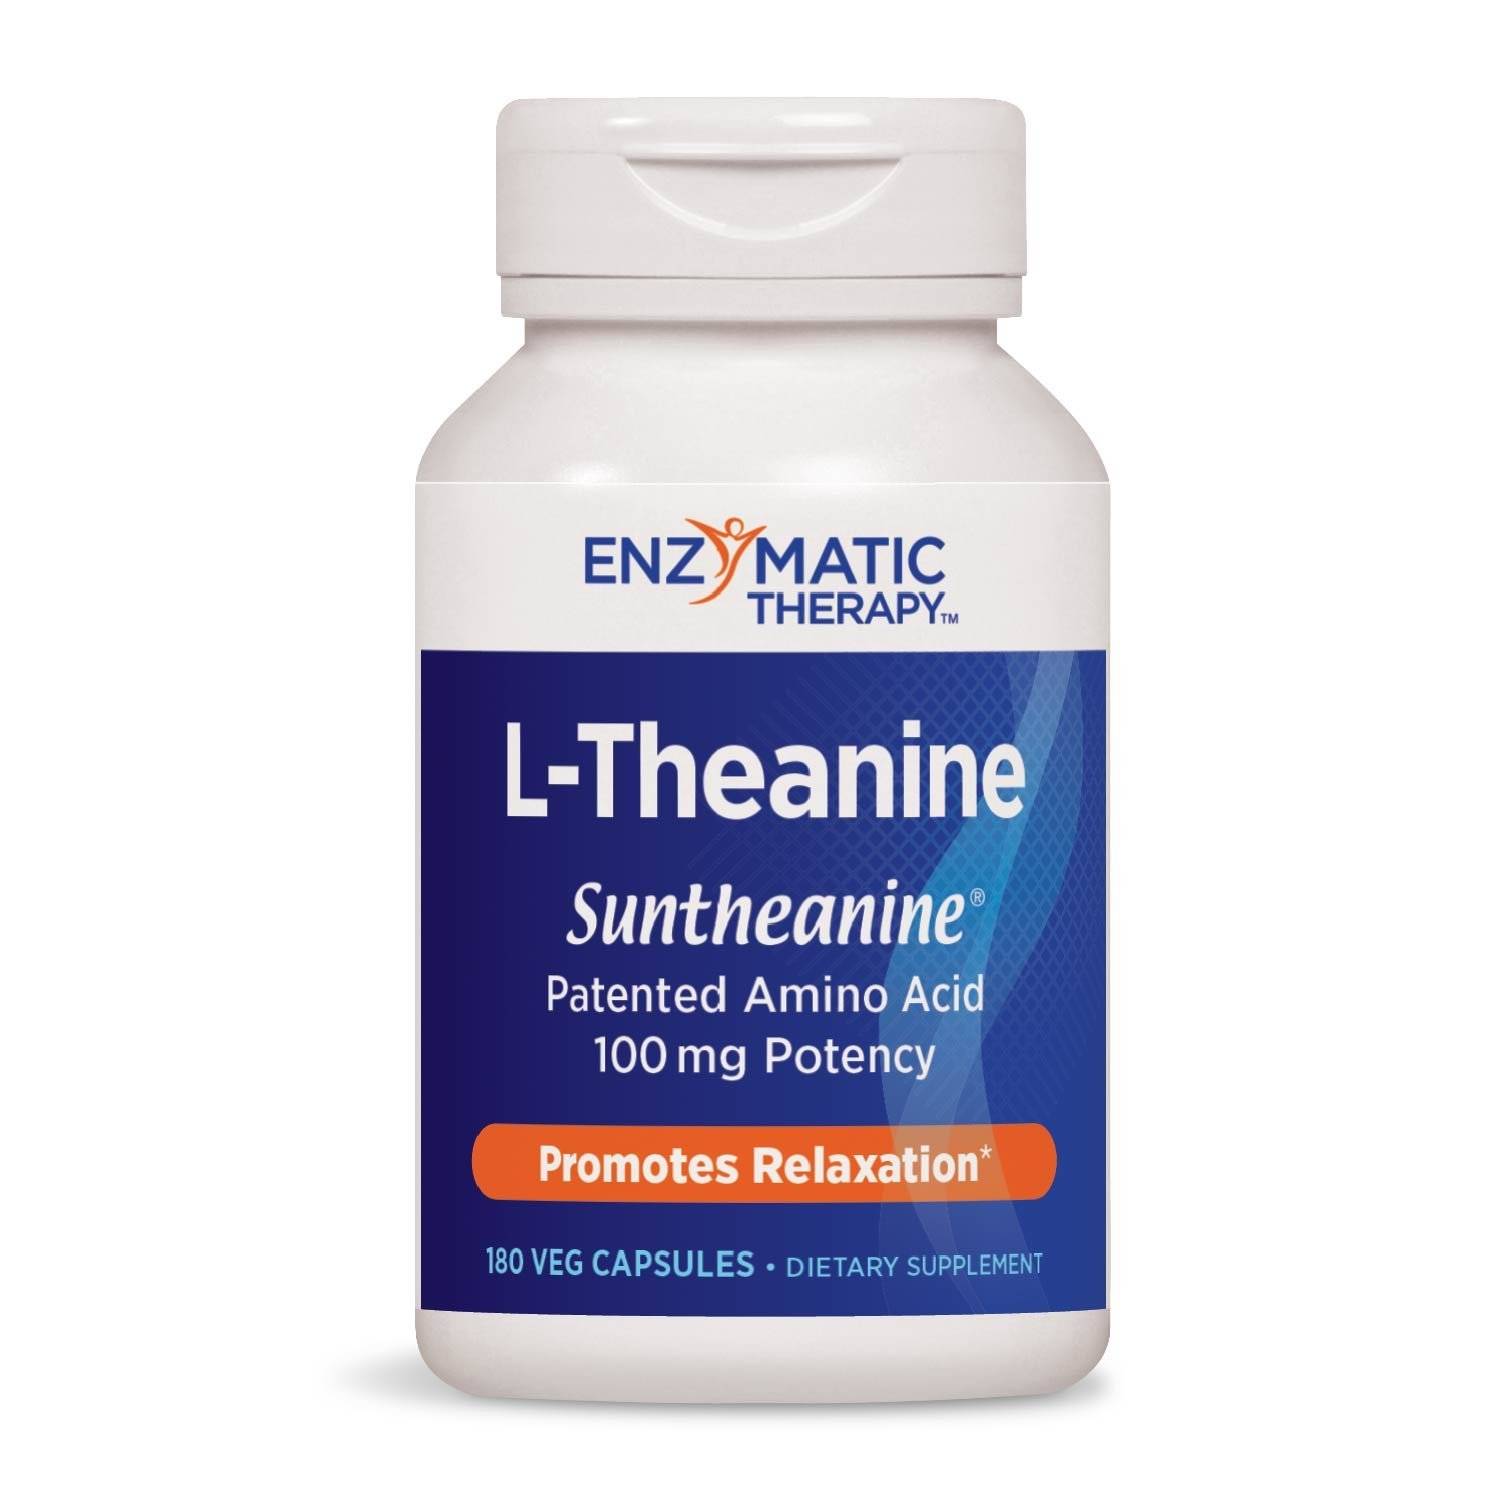 Enzymatic Therapy L-Theanine Suntheanine® Brand Patented Amino Acid 100 mg Potency, 180 VCaps by Enzymatic Therapy